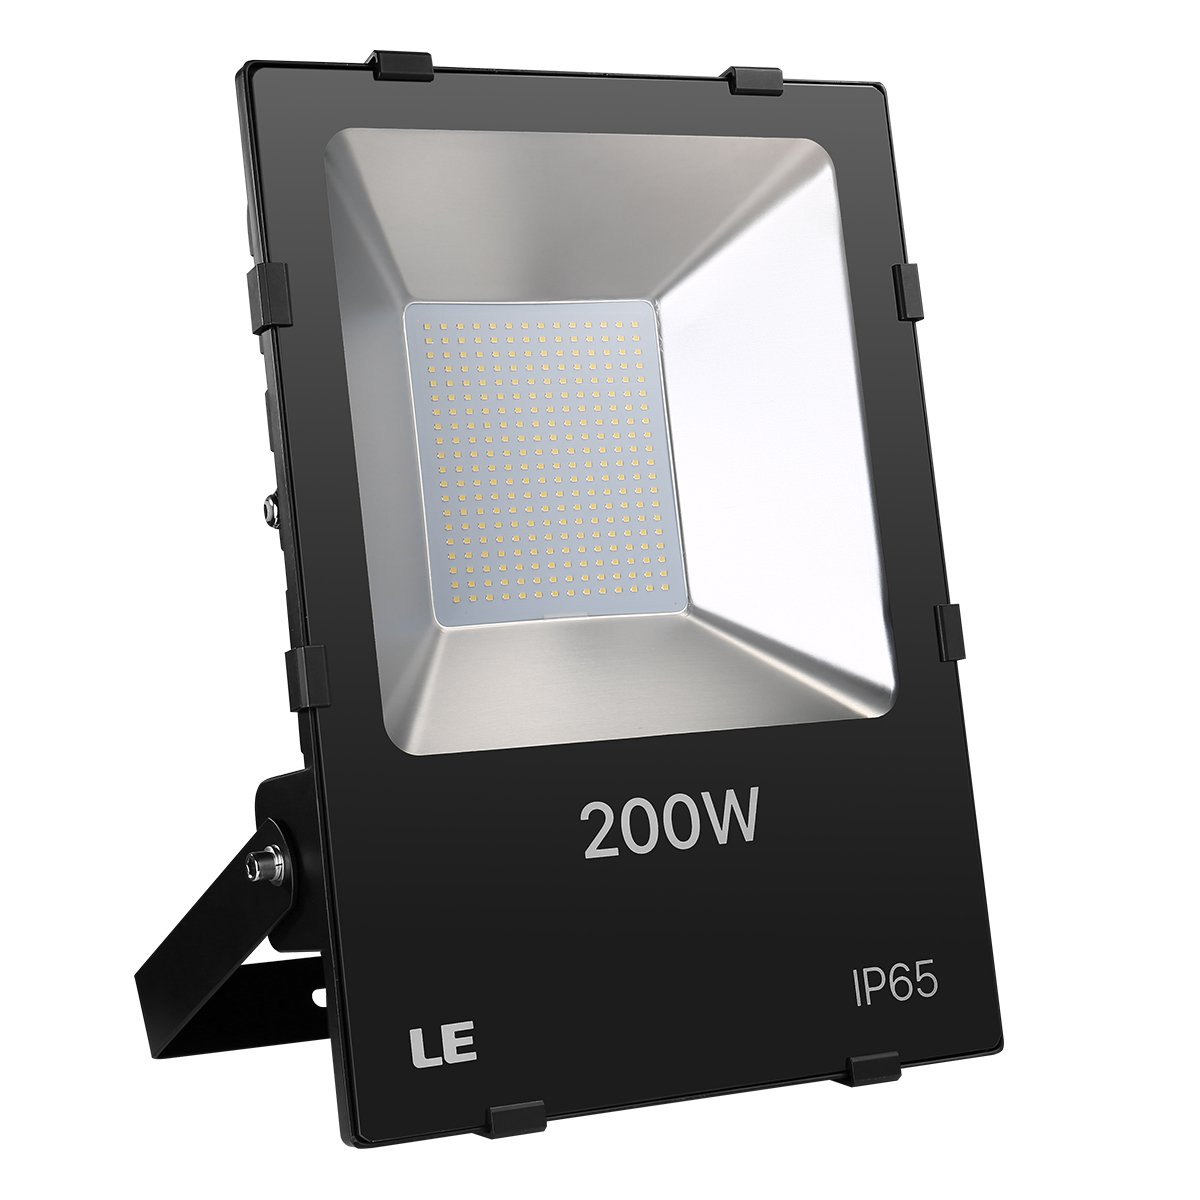 Amazon.com: LE 200W Super Bright Outdoor LED Flood Lights 22000 ...